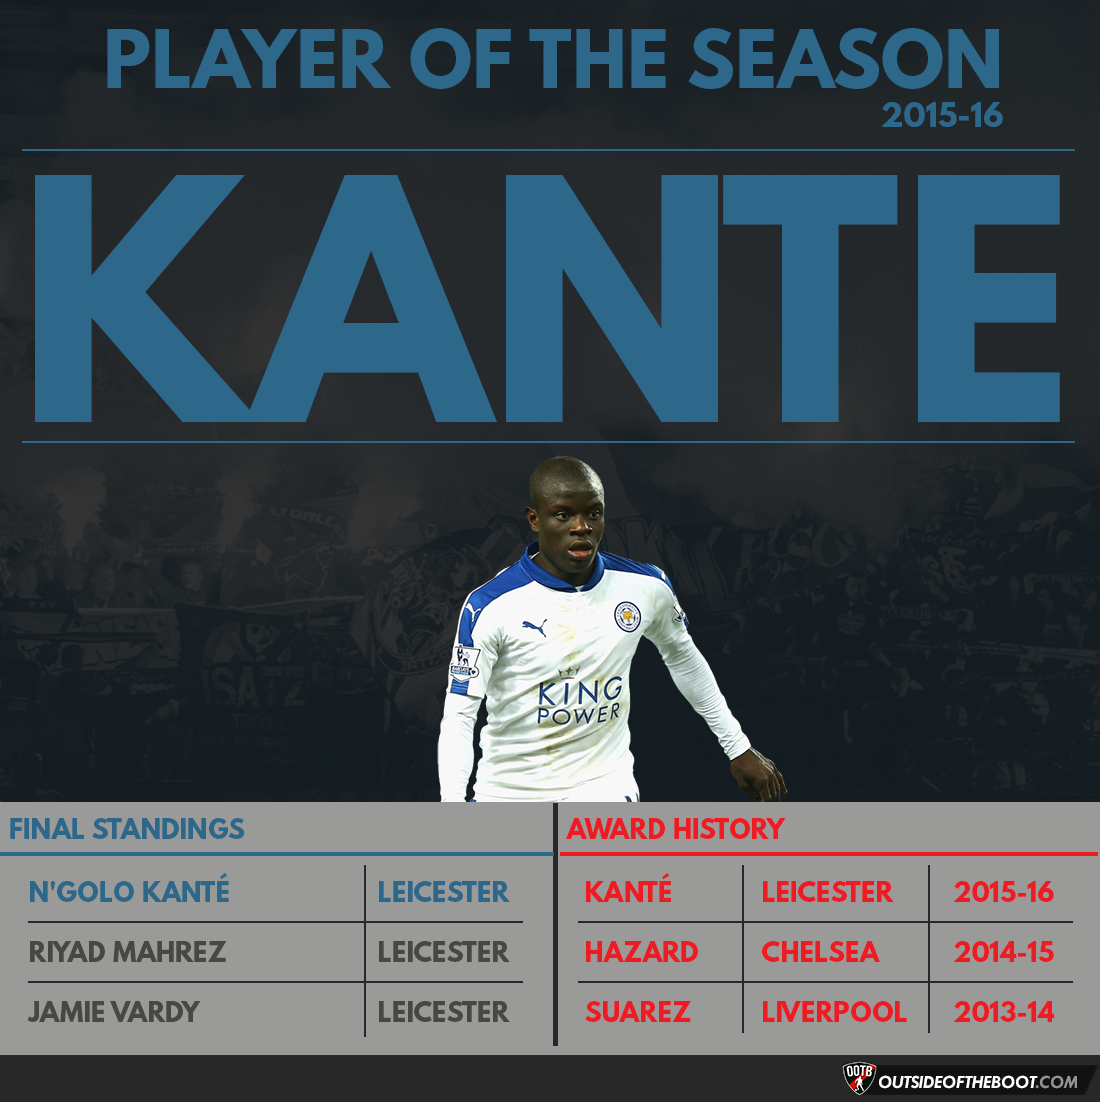 Premier League Player of the Season 2015-16